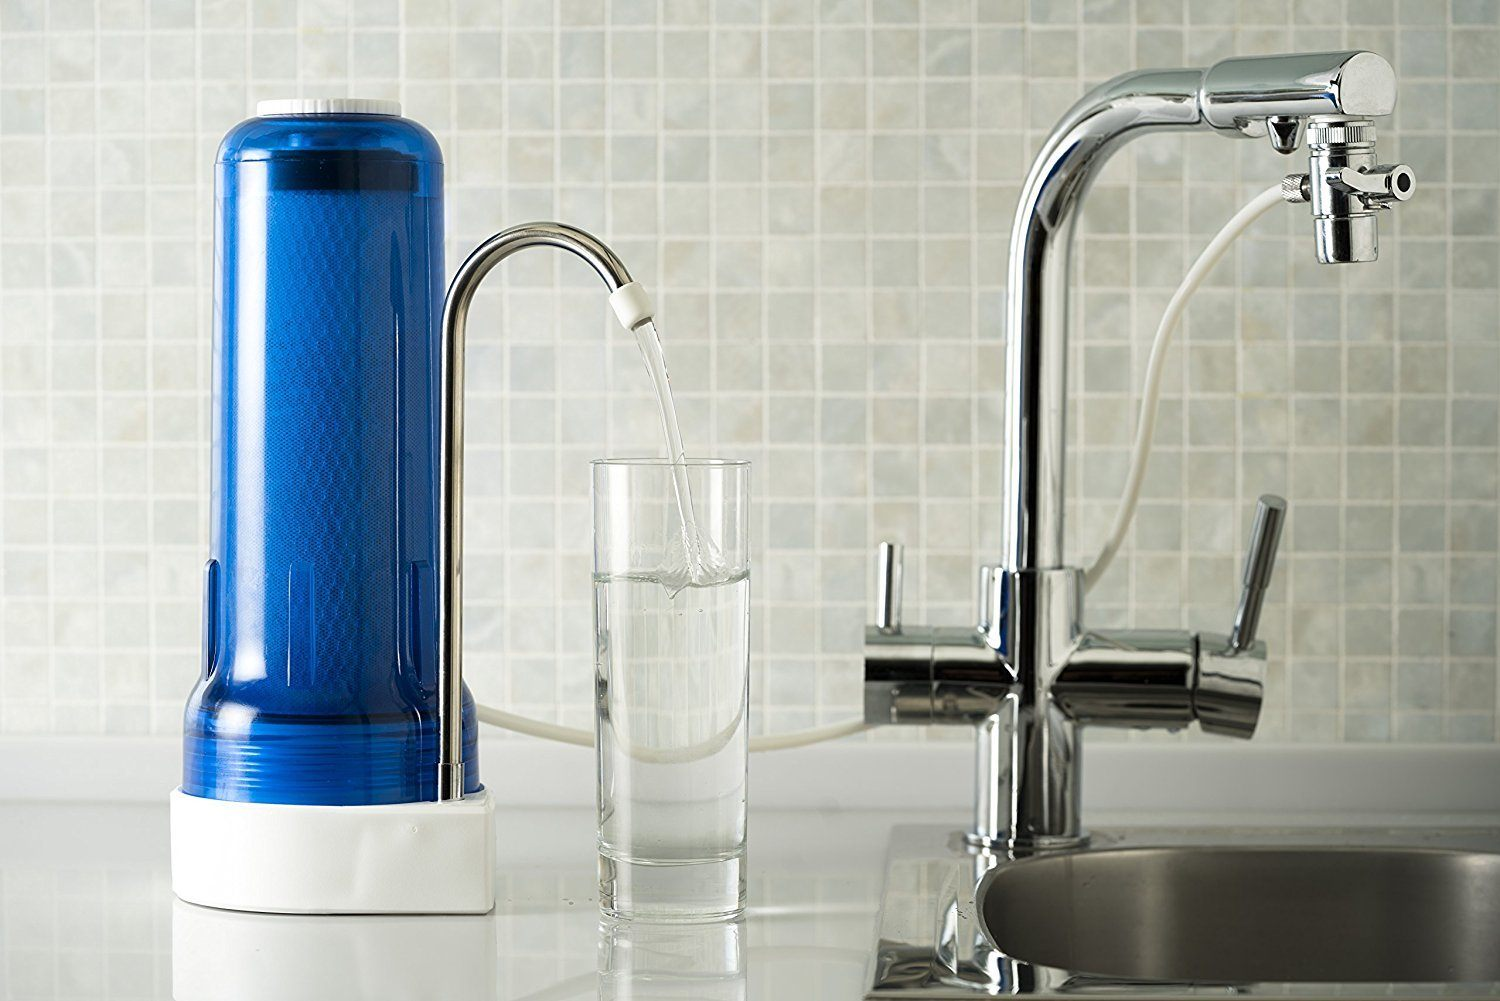 The Best Countertop Water Filters (2020 Reviews)